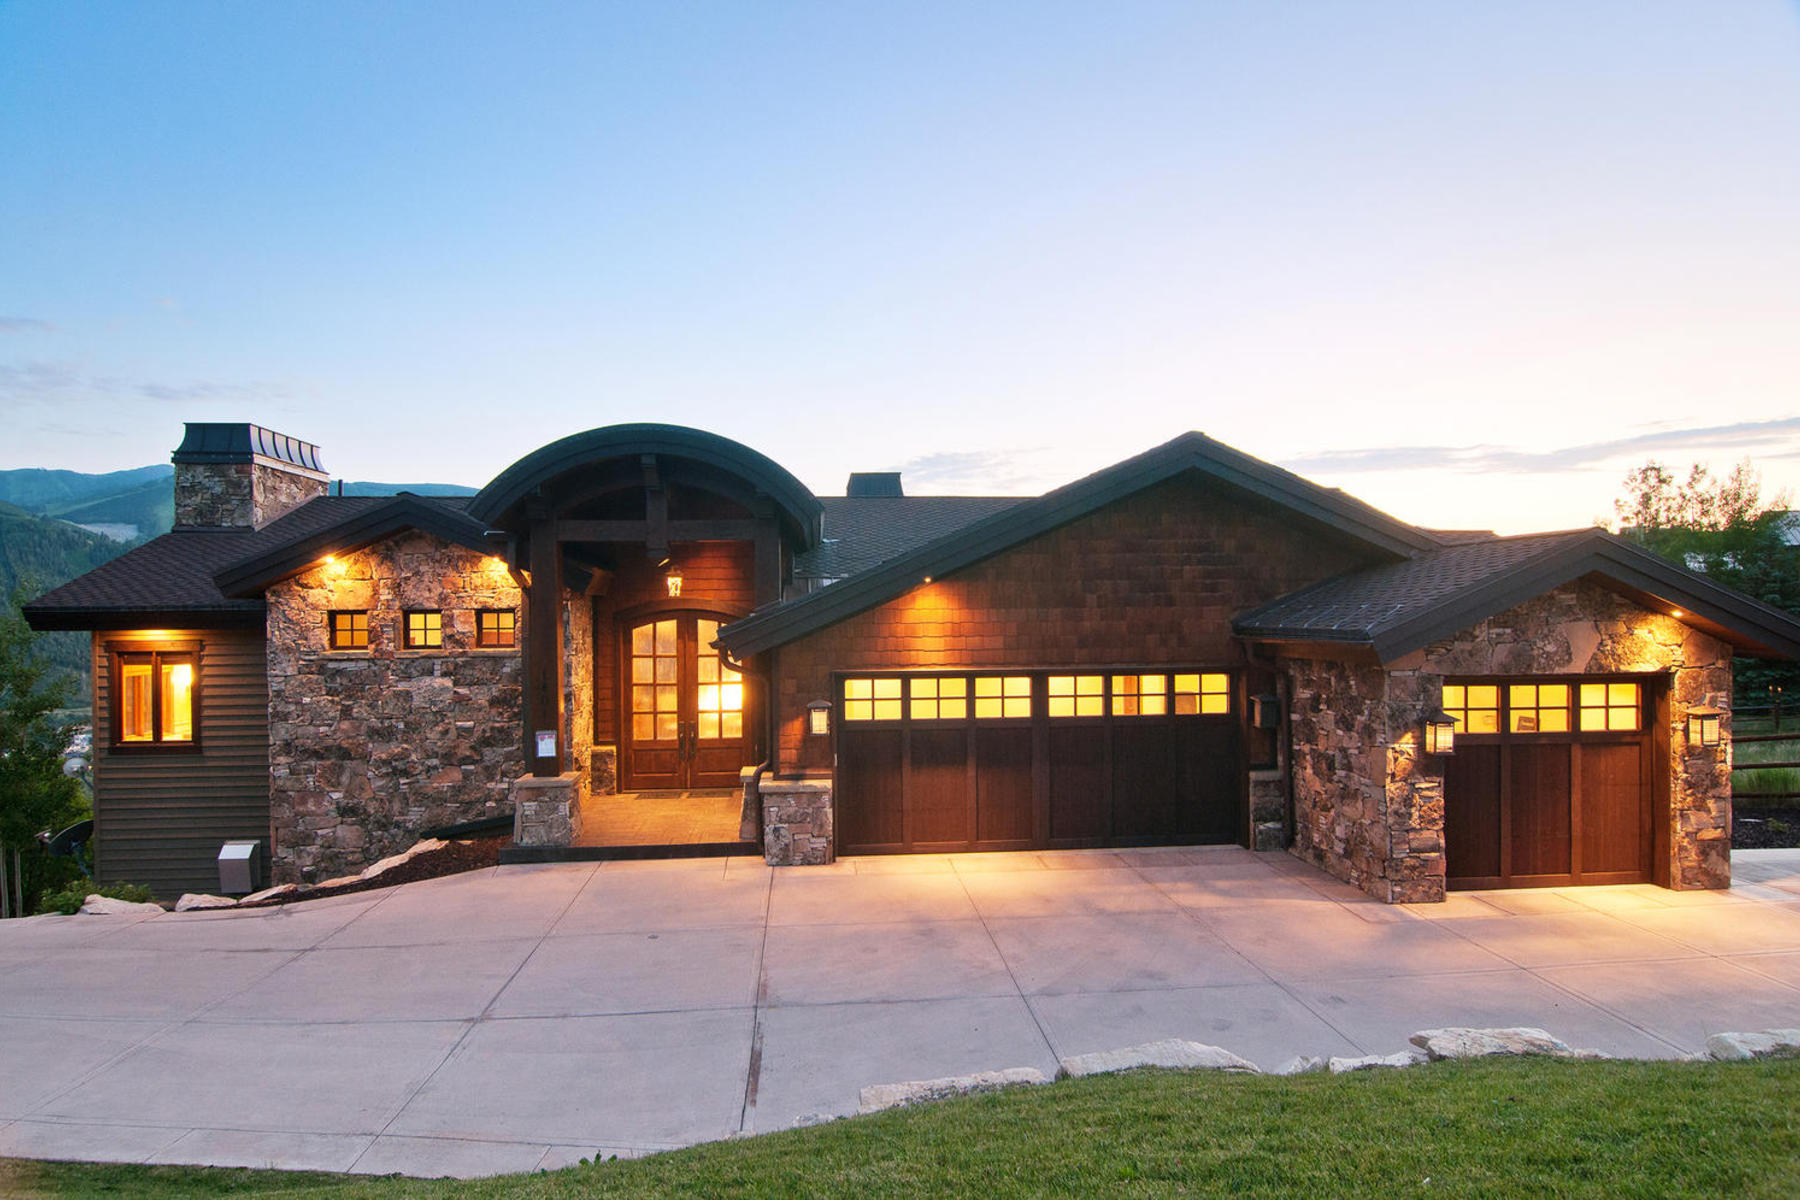 Single Family Home for Sale at Legacy Mountain Masterpiece 1401 Mellow Mountain Rd Park City, Utah 84060 United States